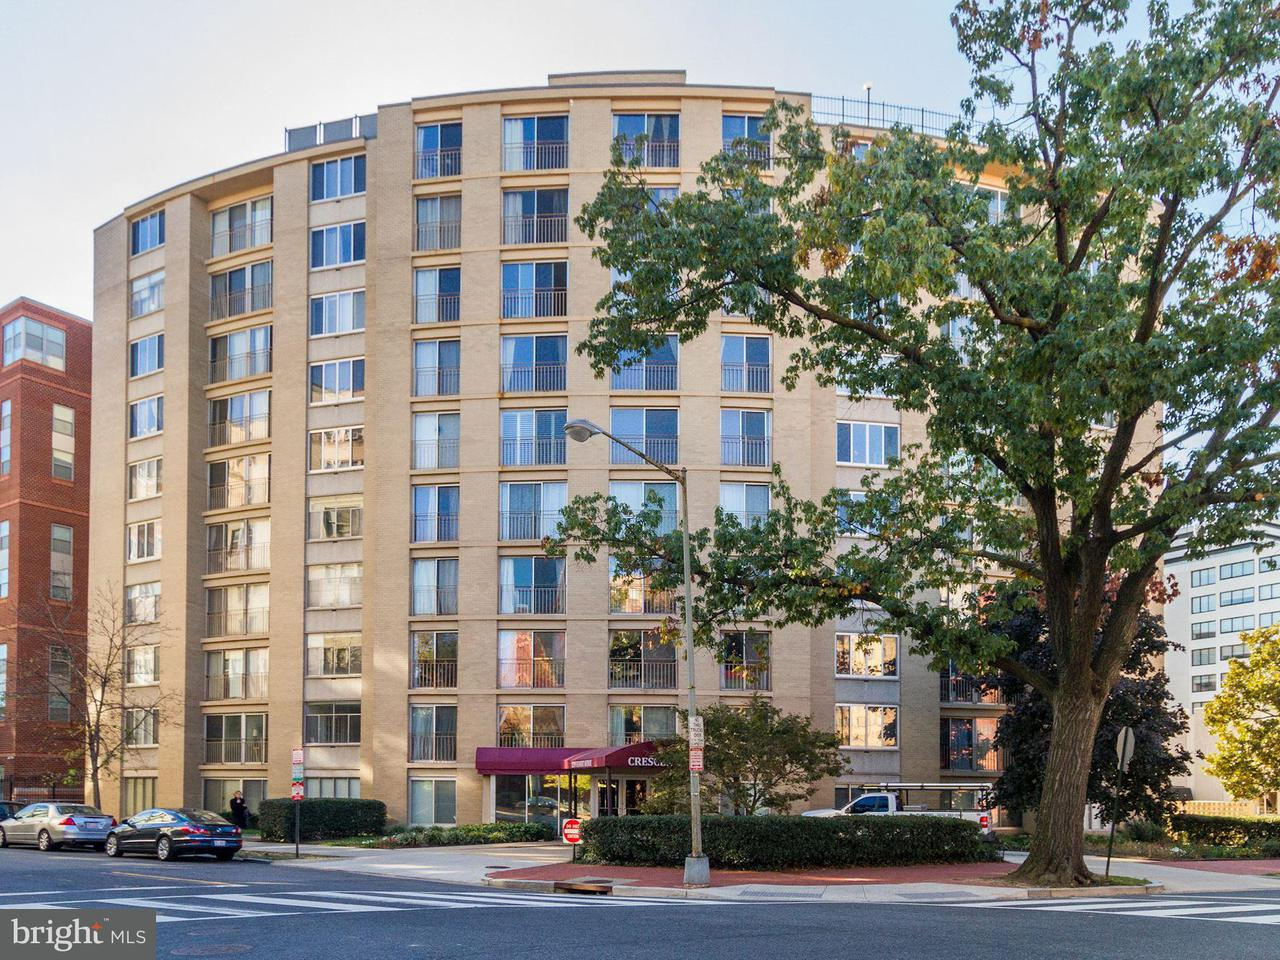 Additional photo for property listing at 1239 Vermont Ave Nw #802 1239 Vermont Ave Nw #802 Washington, District Of Columbia 20005 Vereinigte Staaten